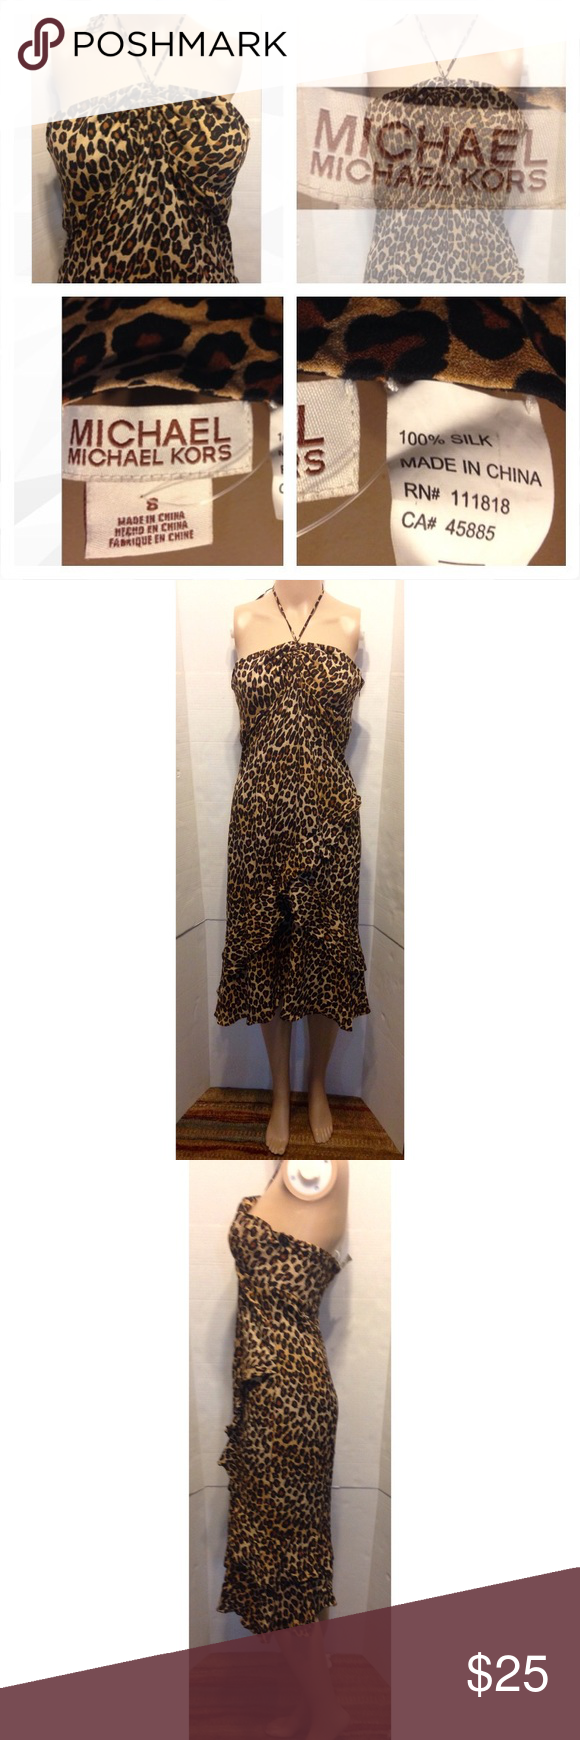 Michael Michael Kors leopard halter dress Tie neck halter dress. Leopard print  asymmetrical Ruffles on lower half. Side zipper , 100% silk Good condition MICHAEL Michael Kors Dresses Backless